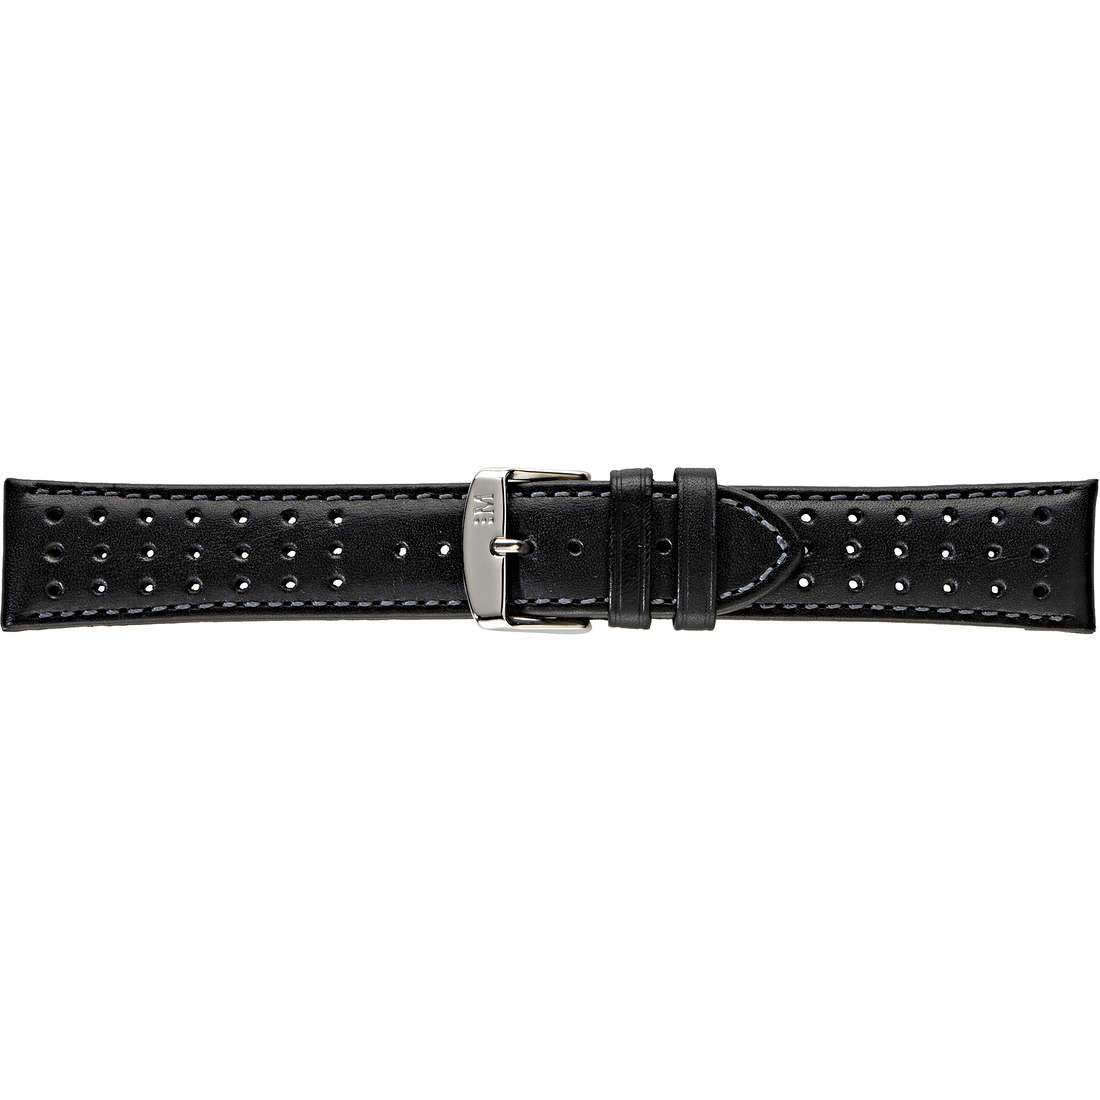 watch watch bands watch straps man Morellato Linea Sport A01U3459237019CR22